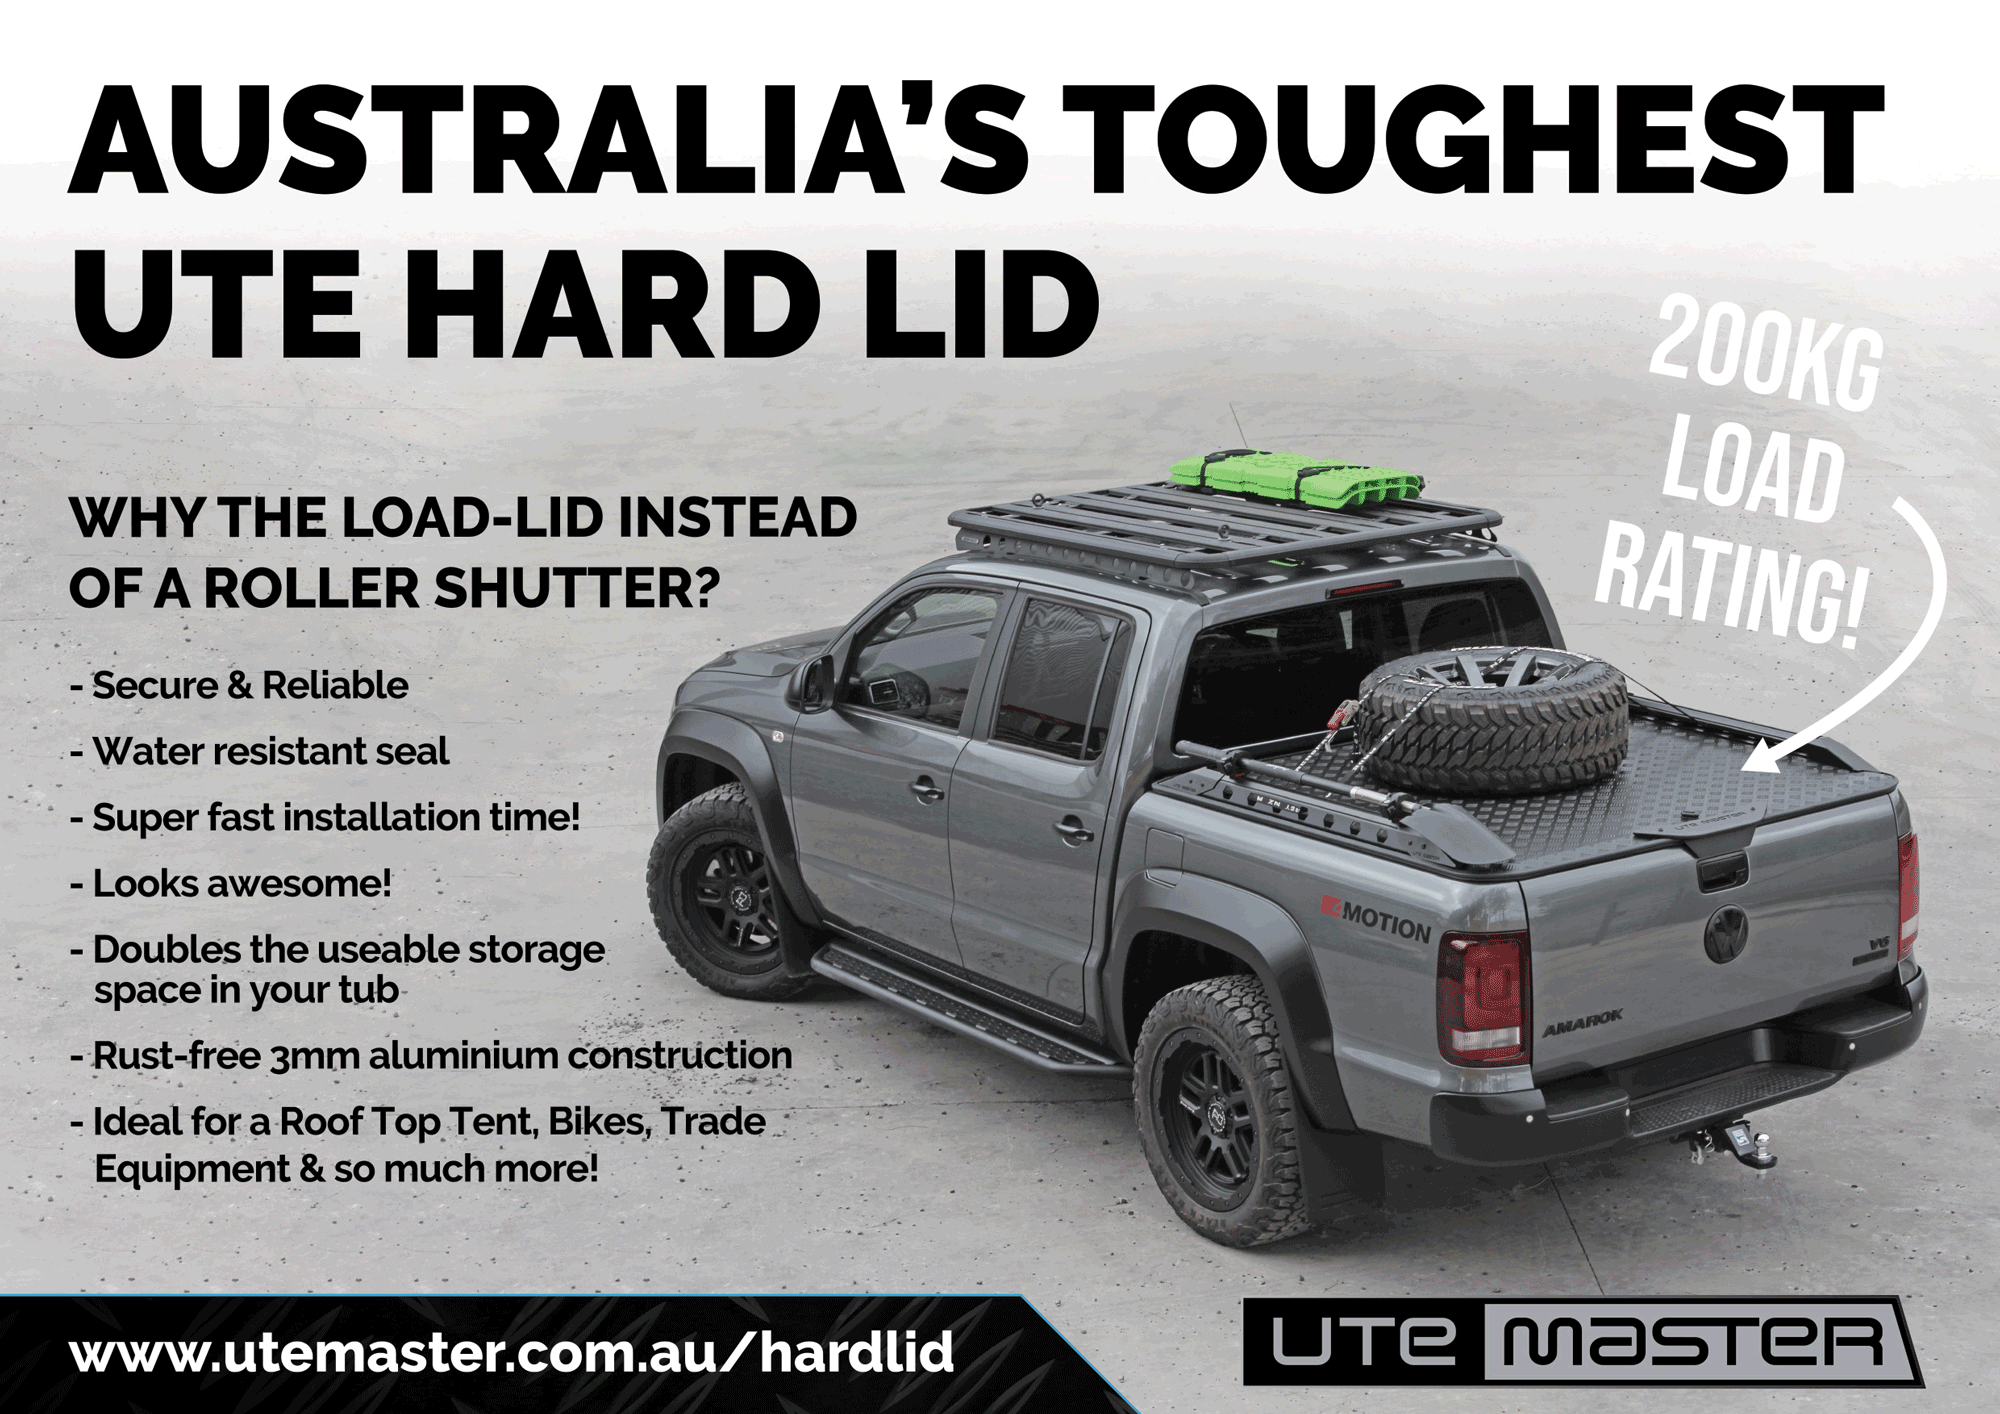 Australia's toughest ute hard lid rated to 200kg! The Load-Lid by Utemaster is an alternative cover to Tonneau, roller cover and roller shutter